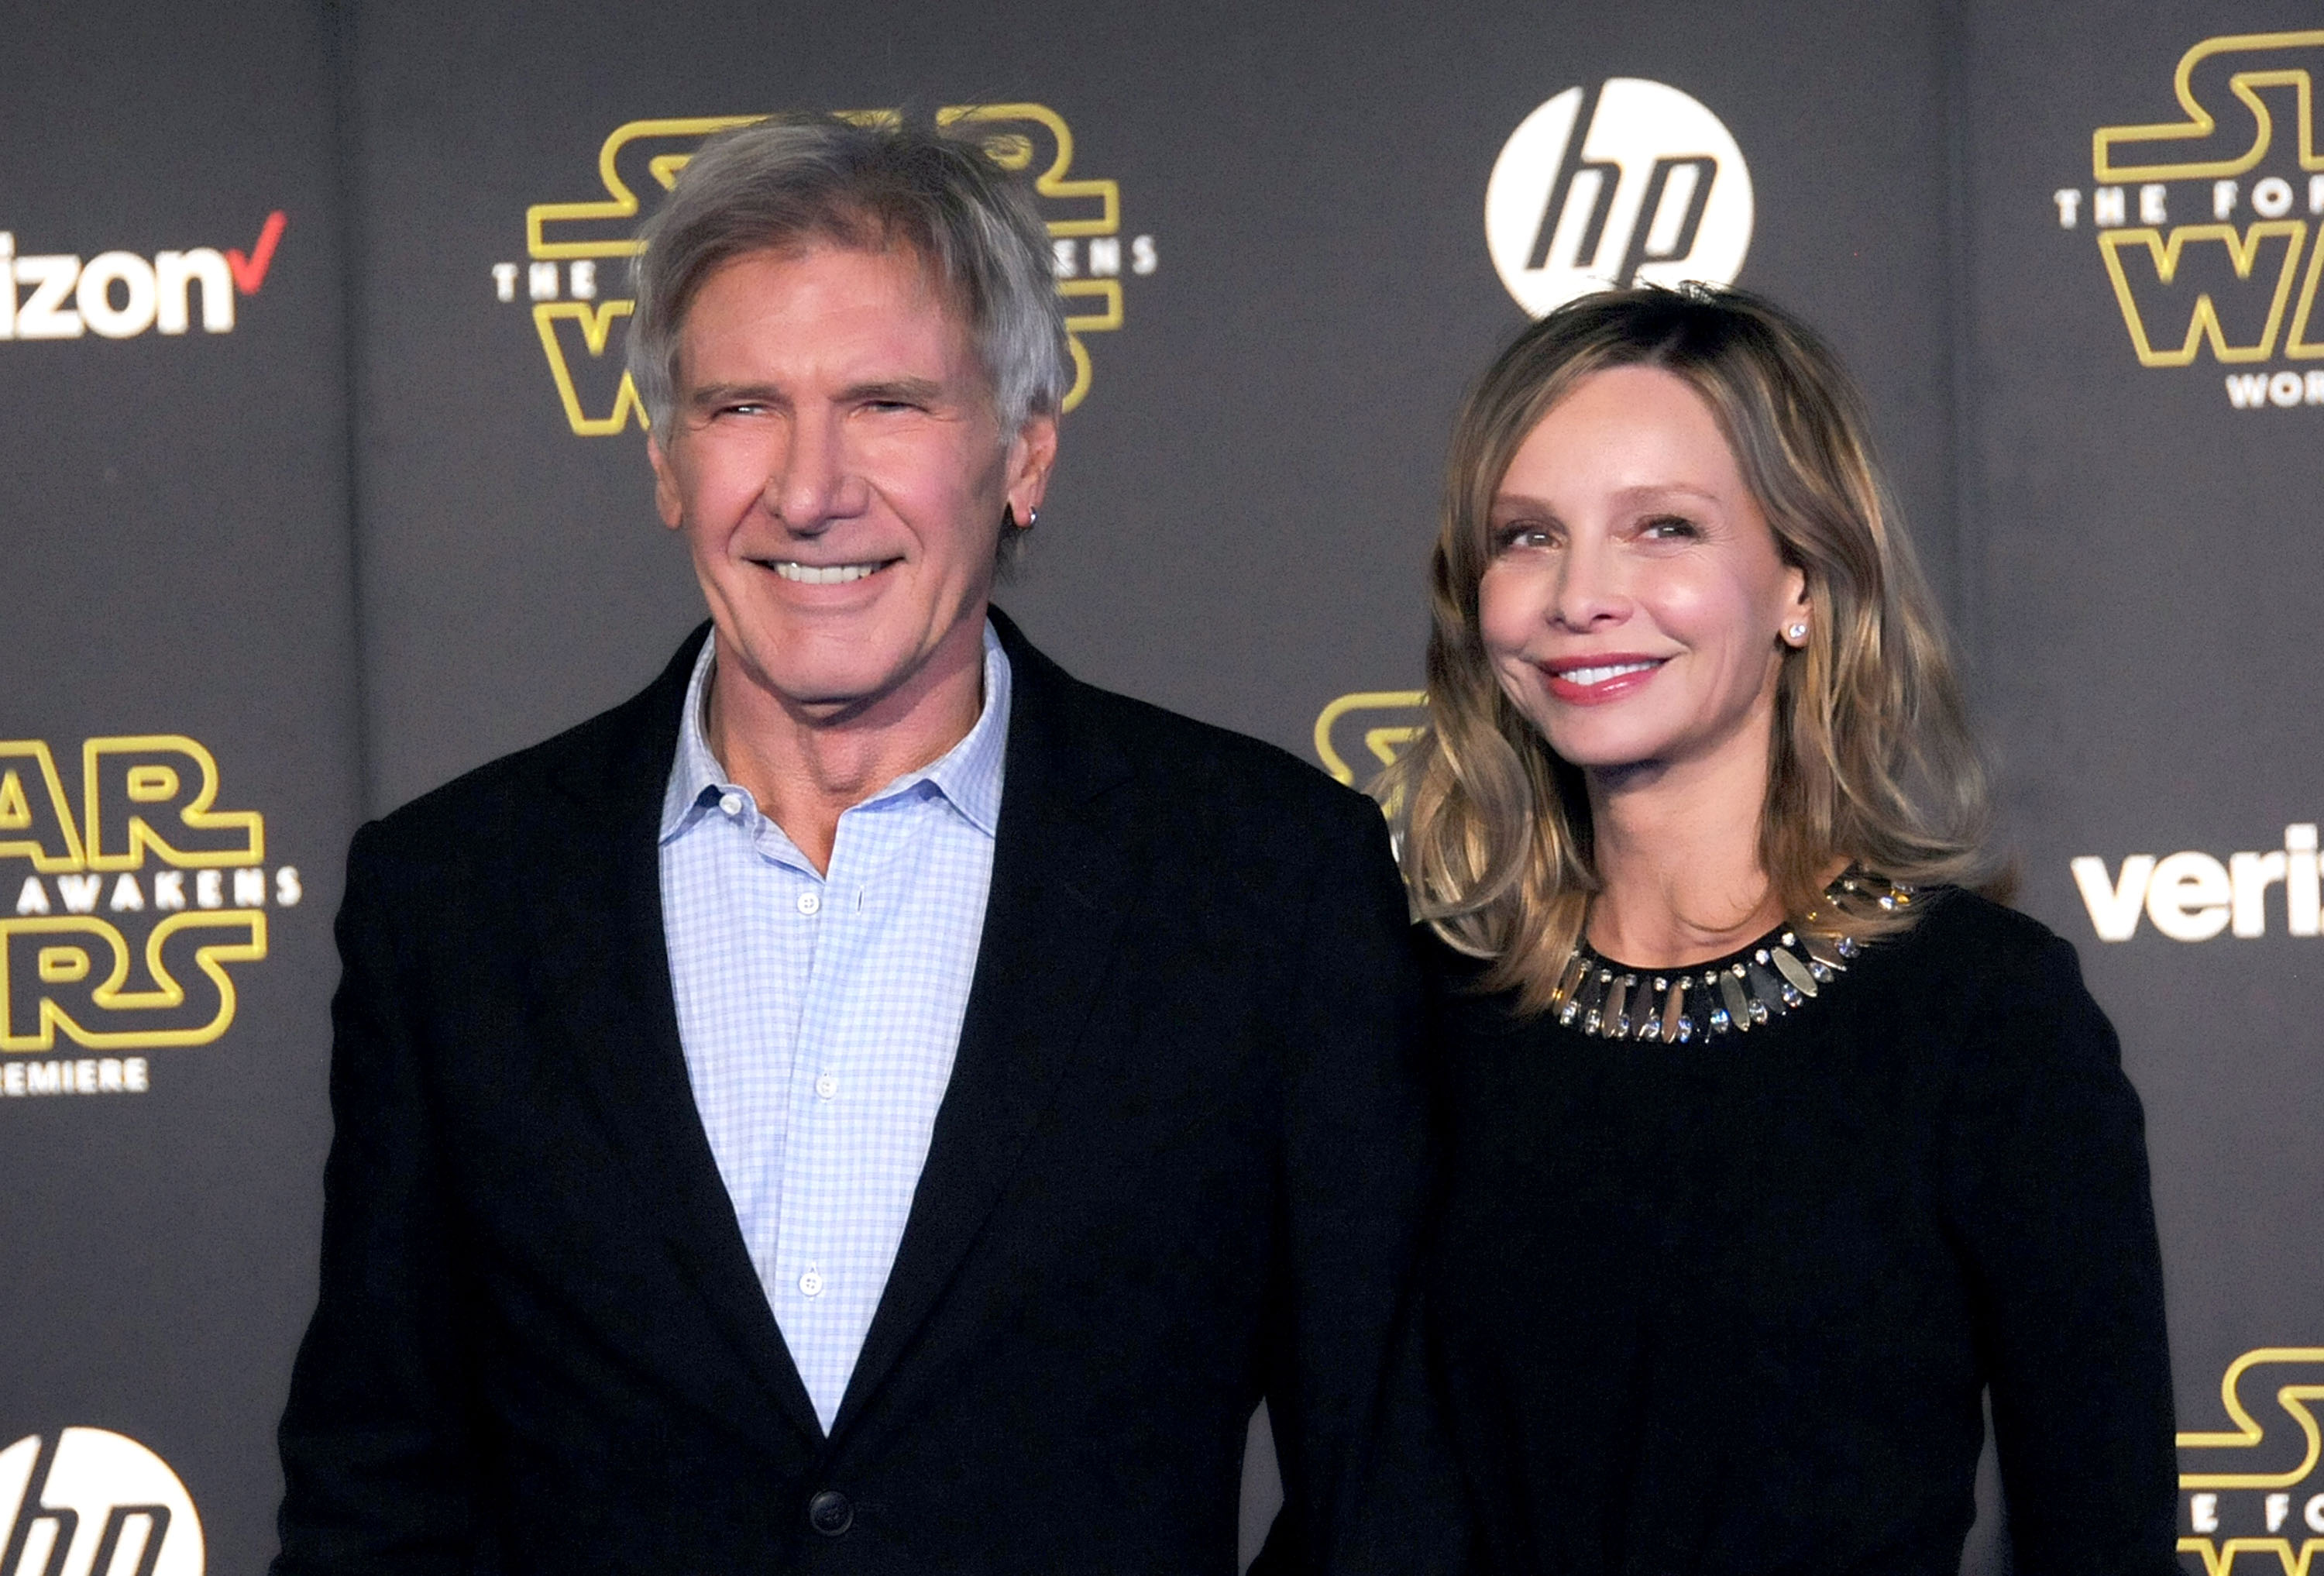 Harrison Ford and Calista Flockhart's Marriage is Getting Better